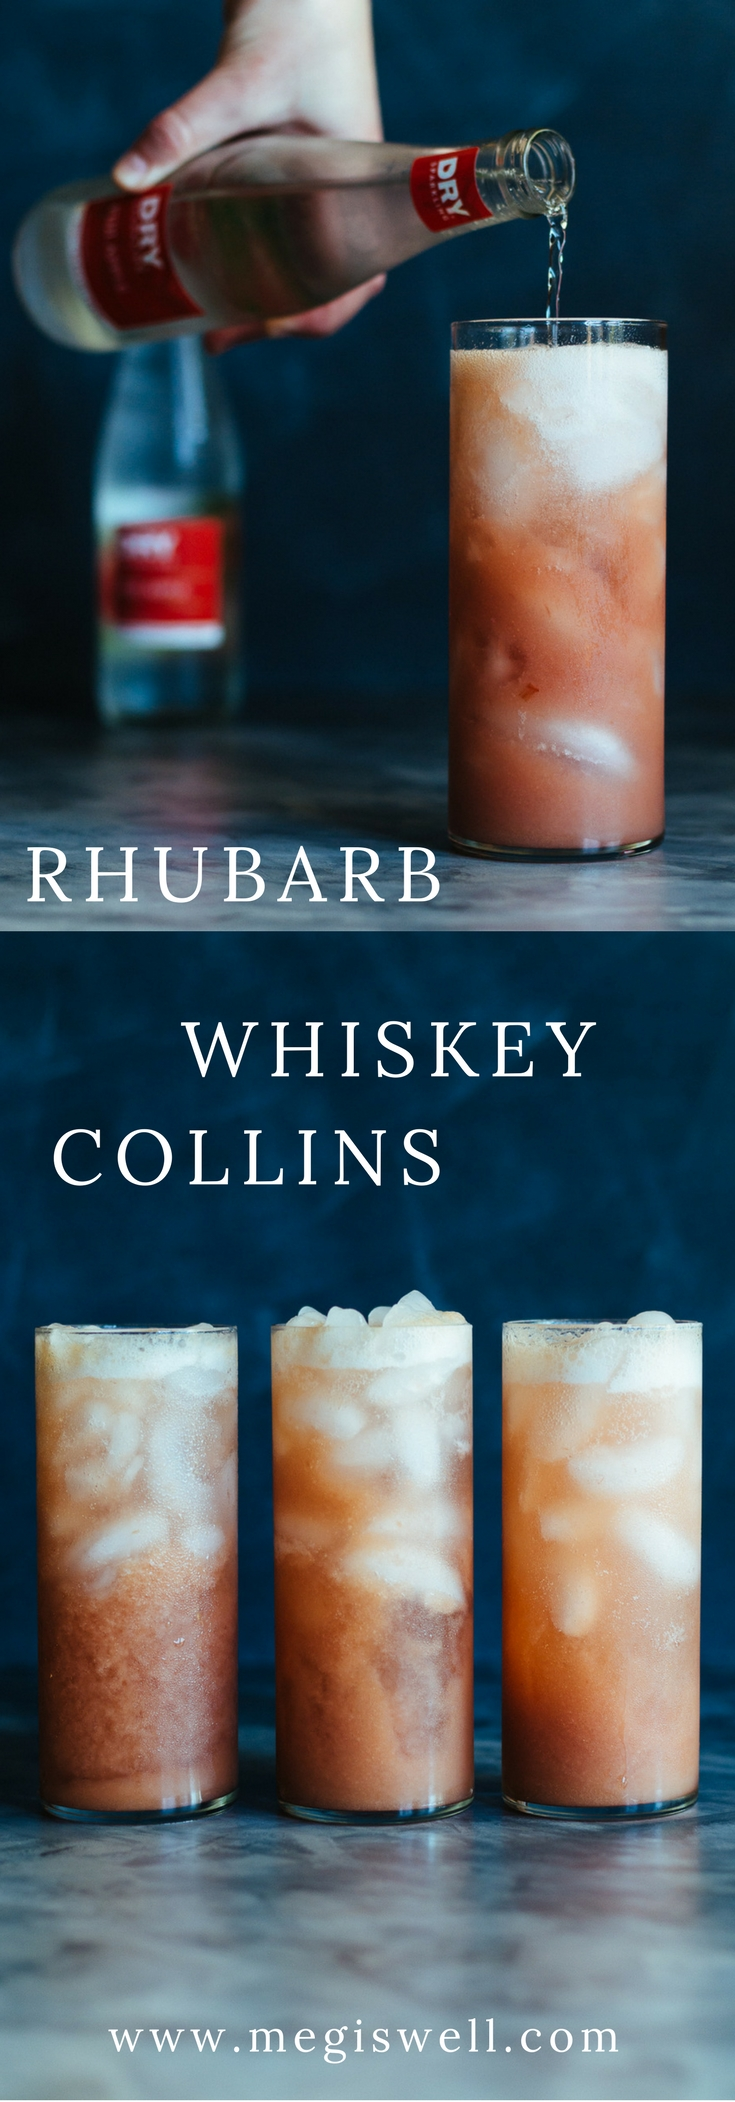 Rhubarb Whiskey Collins is a refreshing effervescent mix of rhubarb puree, whiskey, and Dry Sparkling Fuji Apple Soda. #mothersday #brunch #spring #summer #whiskey #cocktails